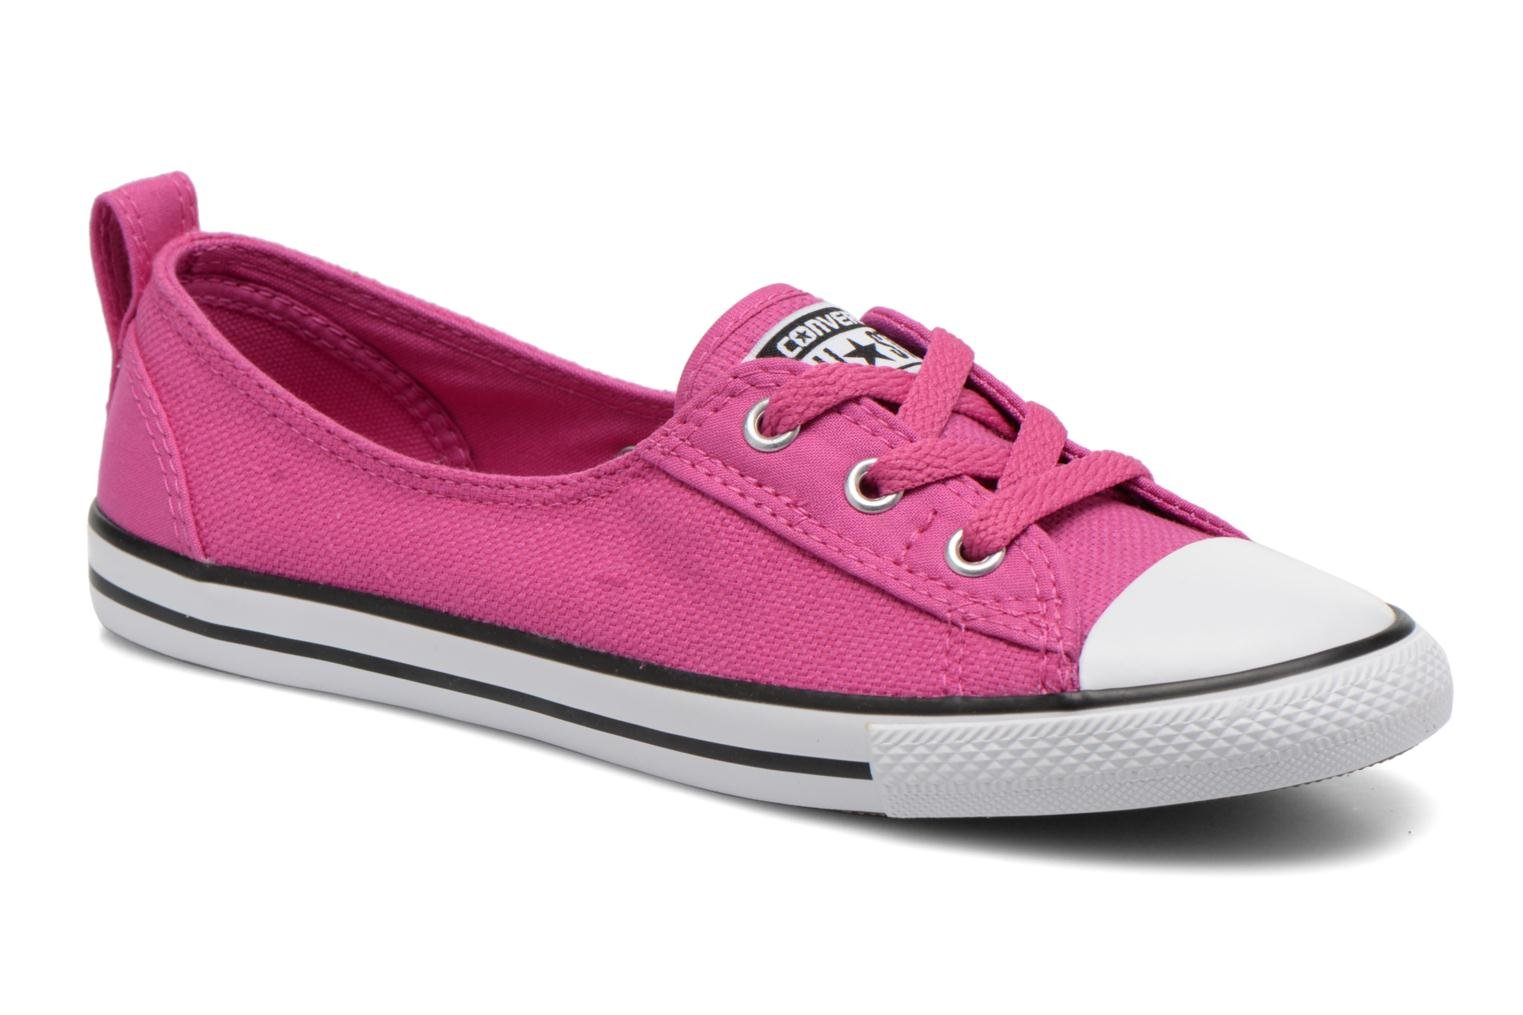 Chuck Taylor All Star Ballet Lace Plastic Pink-White